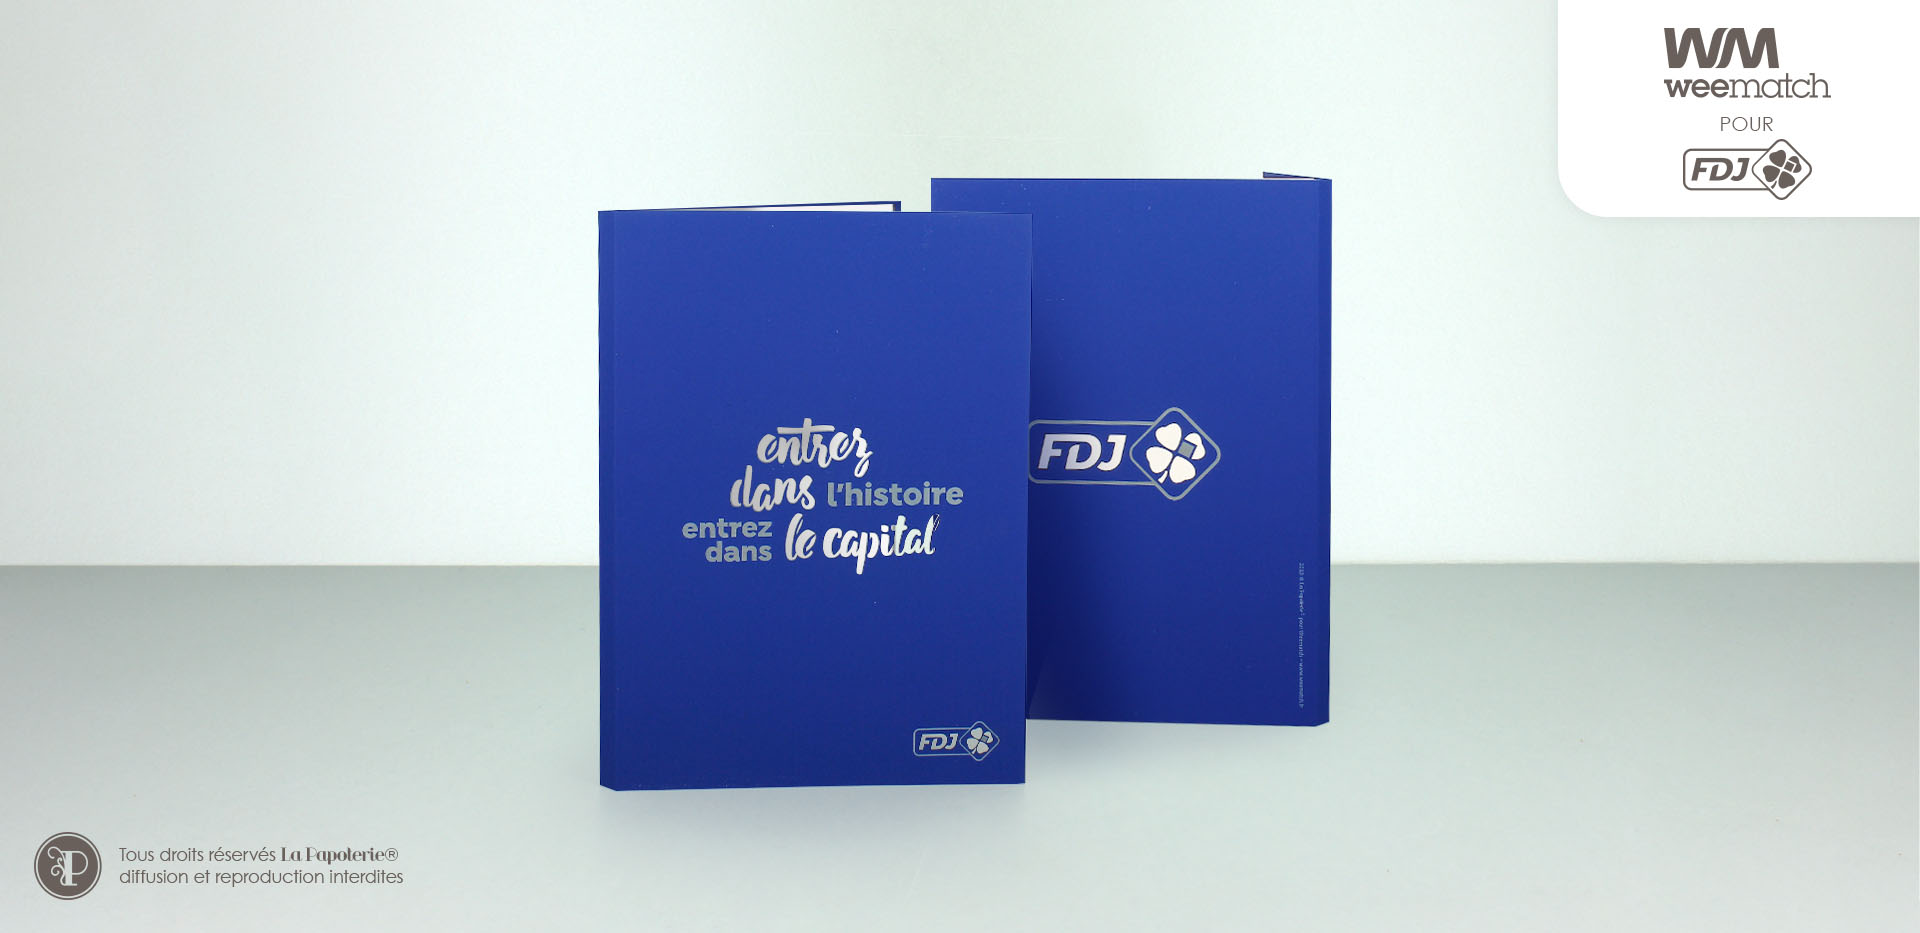 La Papoterie weematch-fdj-carnet-a5 A5 Notebook laser cut engraved Weematch FDJ